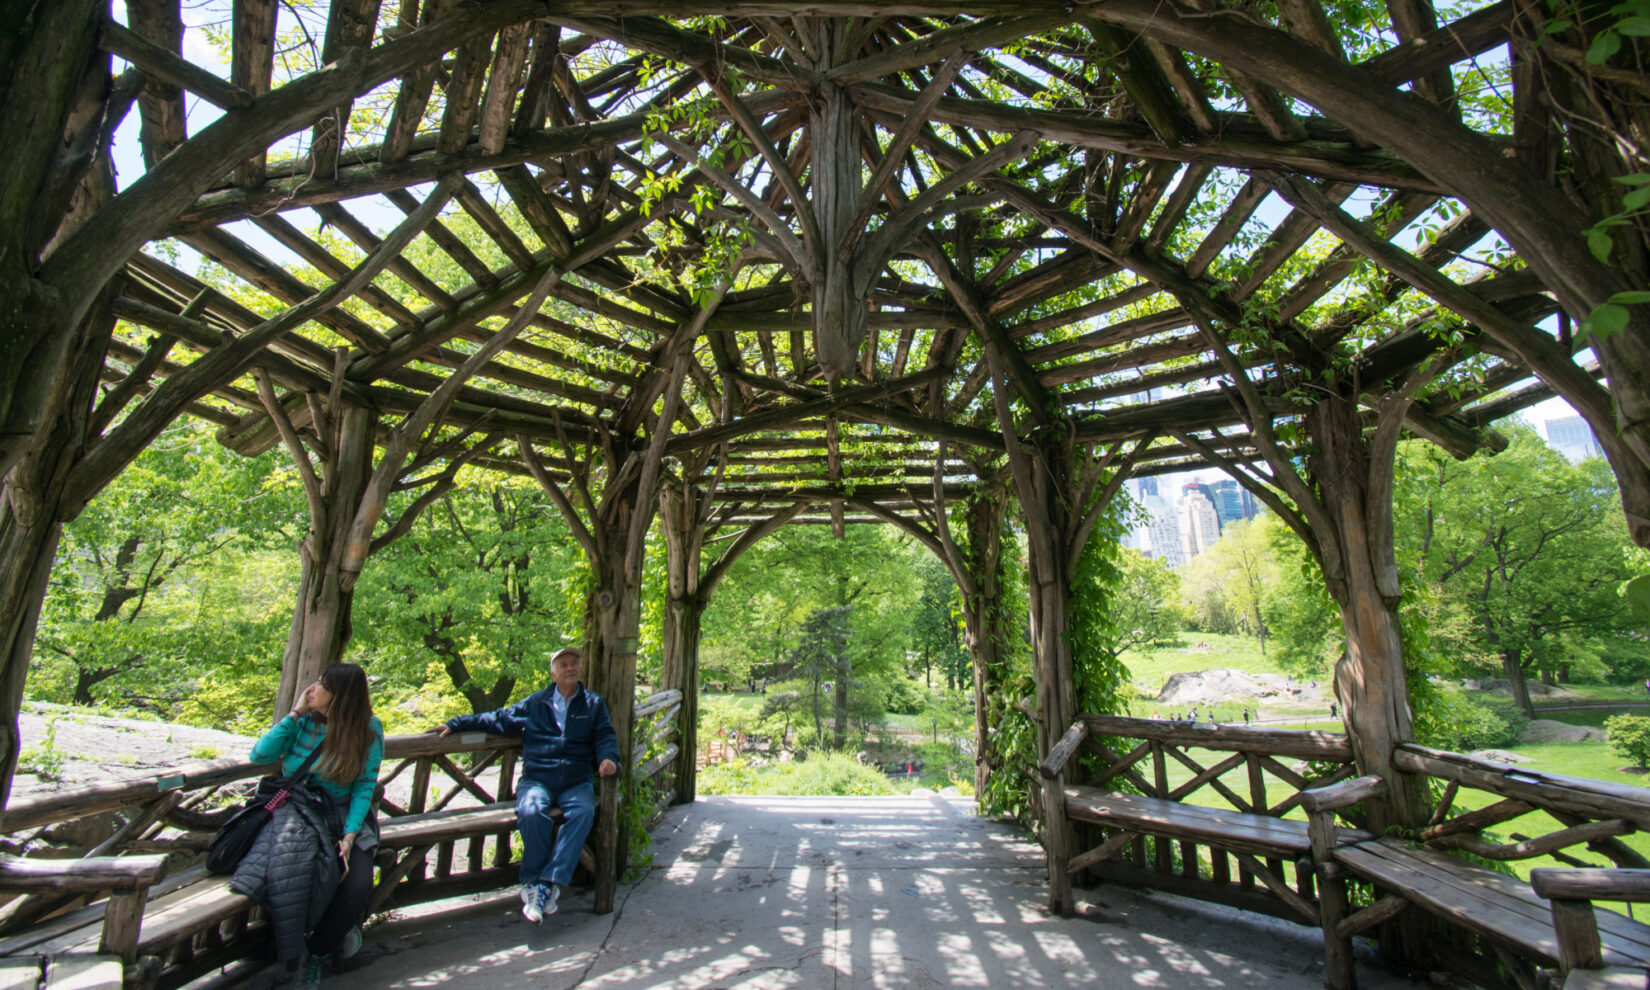 Two park-goers relax on benches under the timbers of the rustic summerhouse